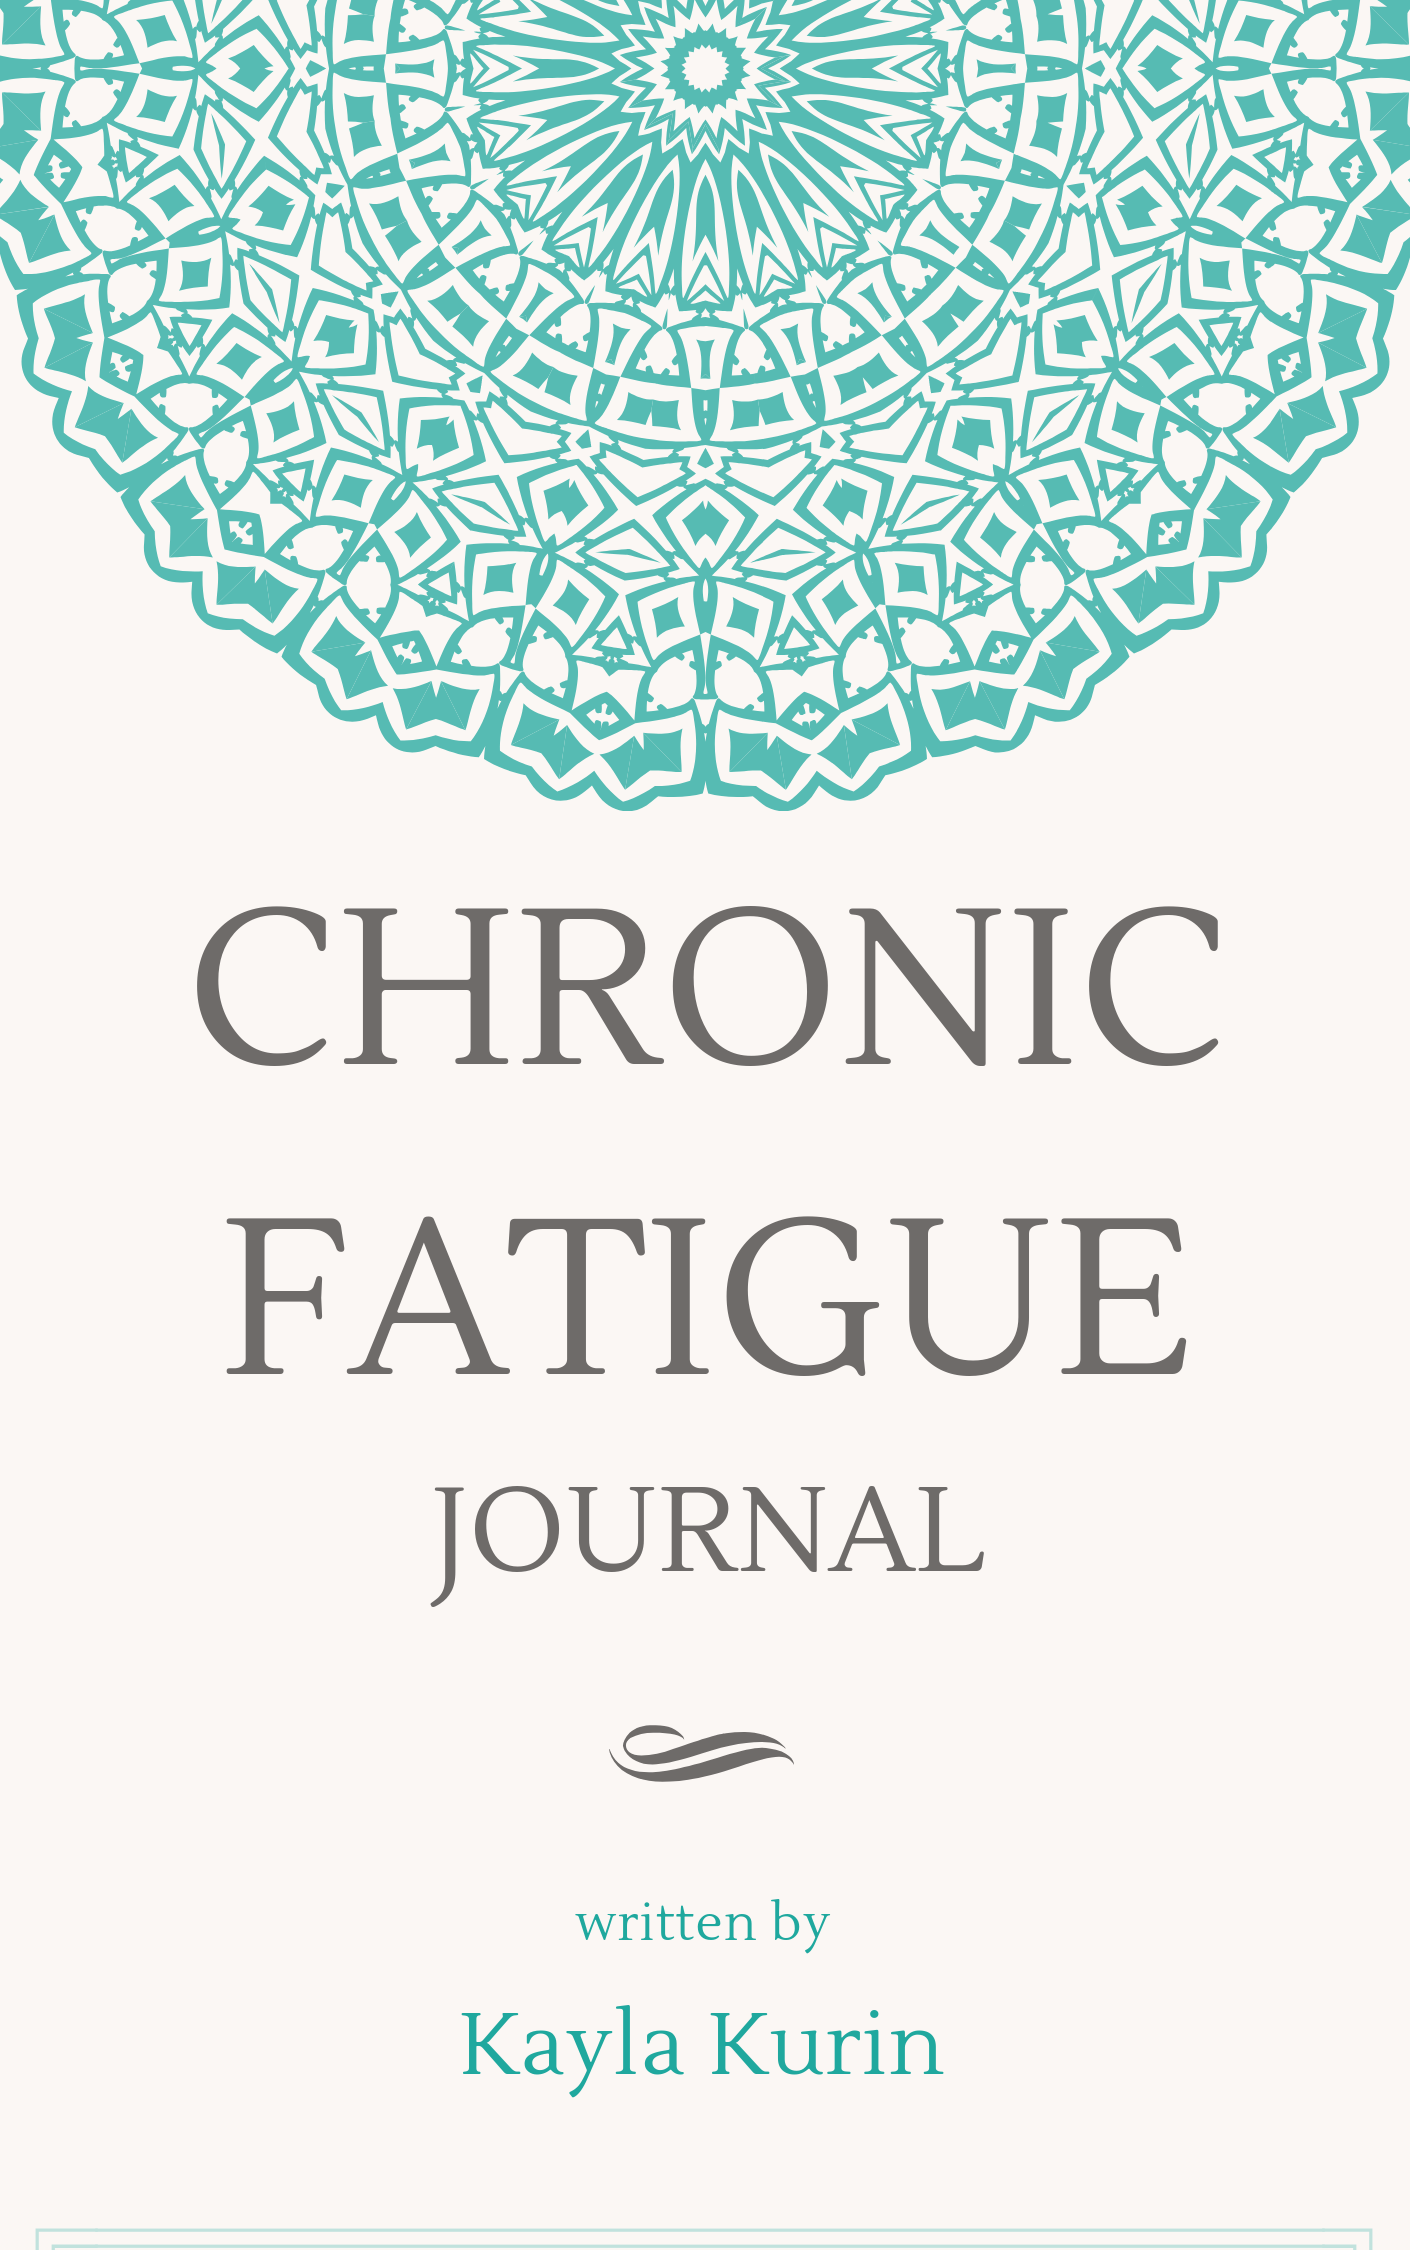 Chronic Fatigue Jorunal